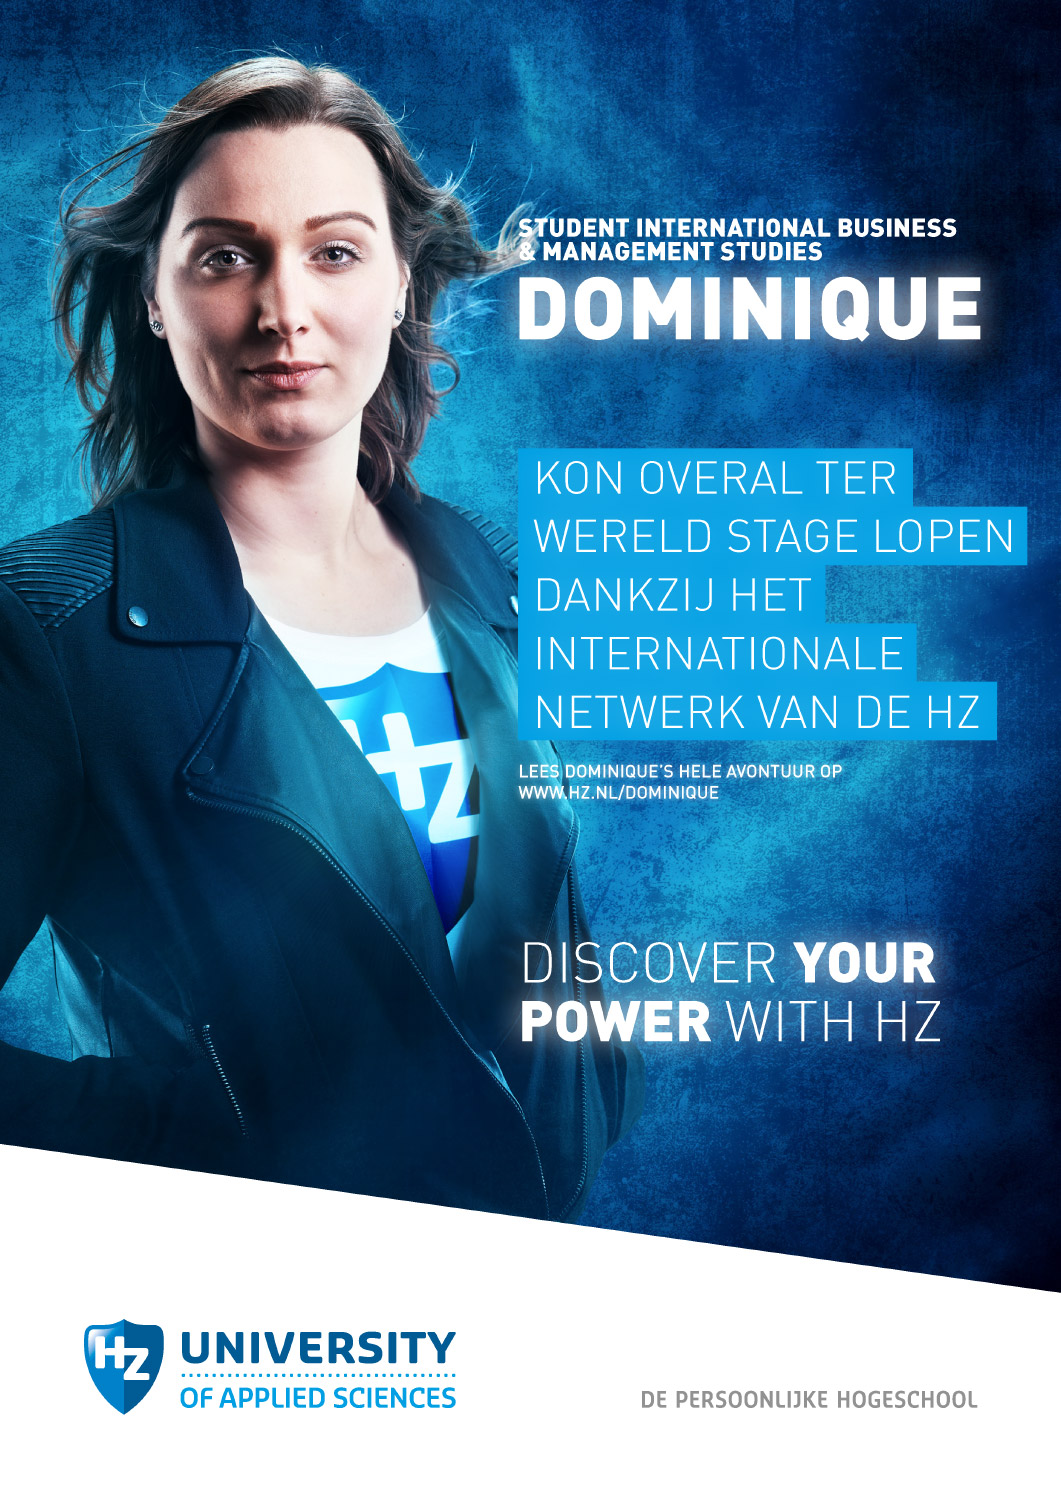 Copy of Advertising fotografie voor 'Discover your power with HZ' campagne